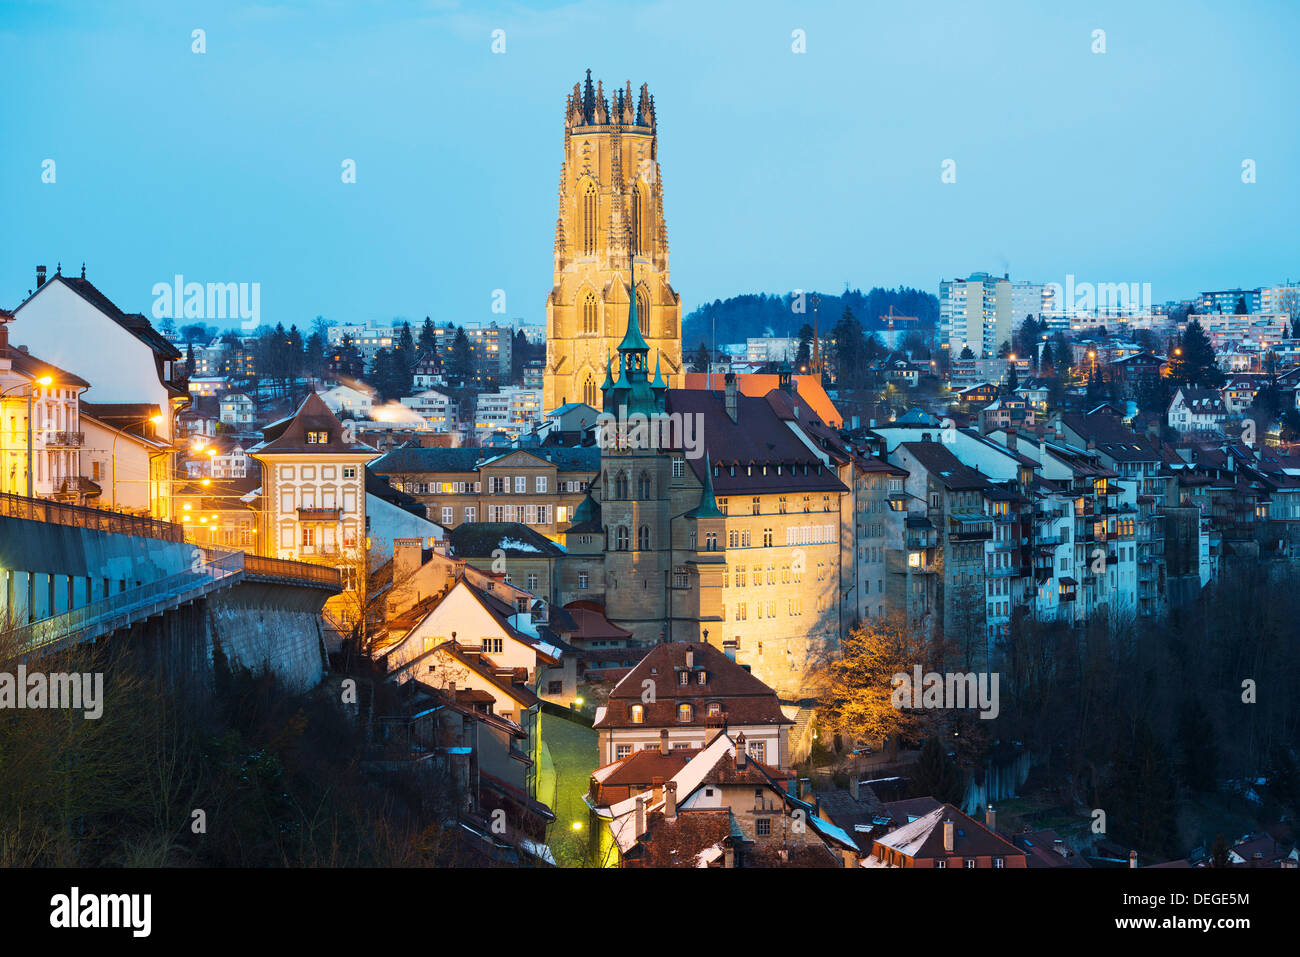 The 13th century Gothic church, St. Nicolas Cathedral, Fribourg, Switzerland, Europe - Stock Image